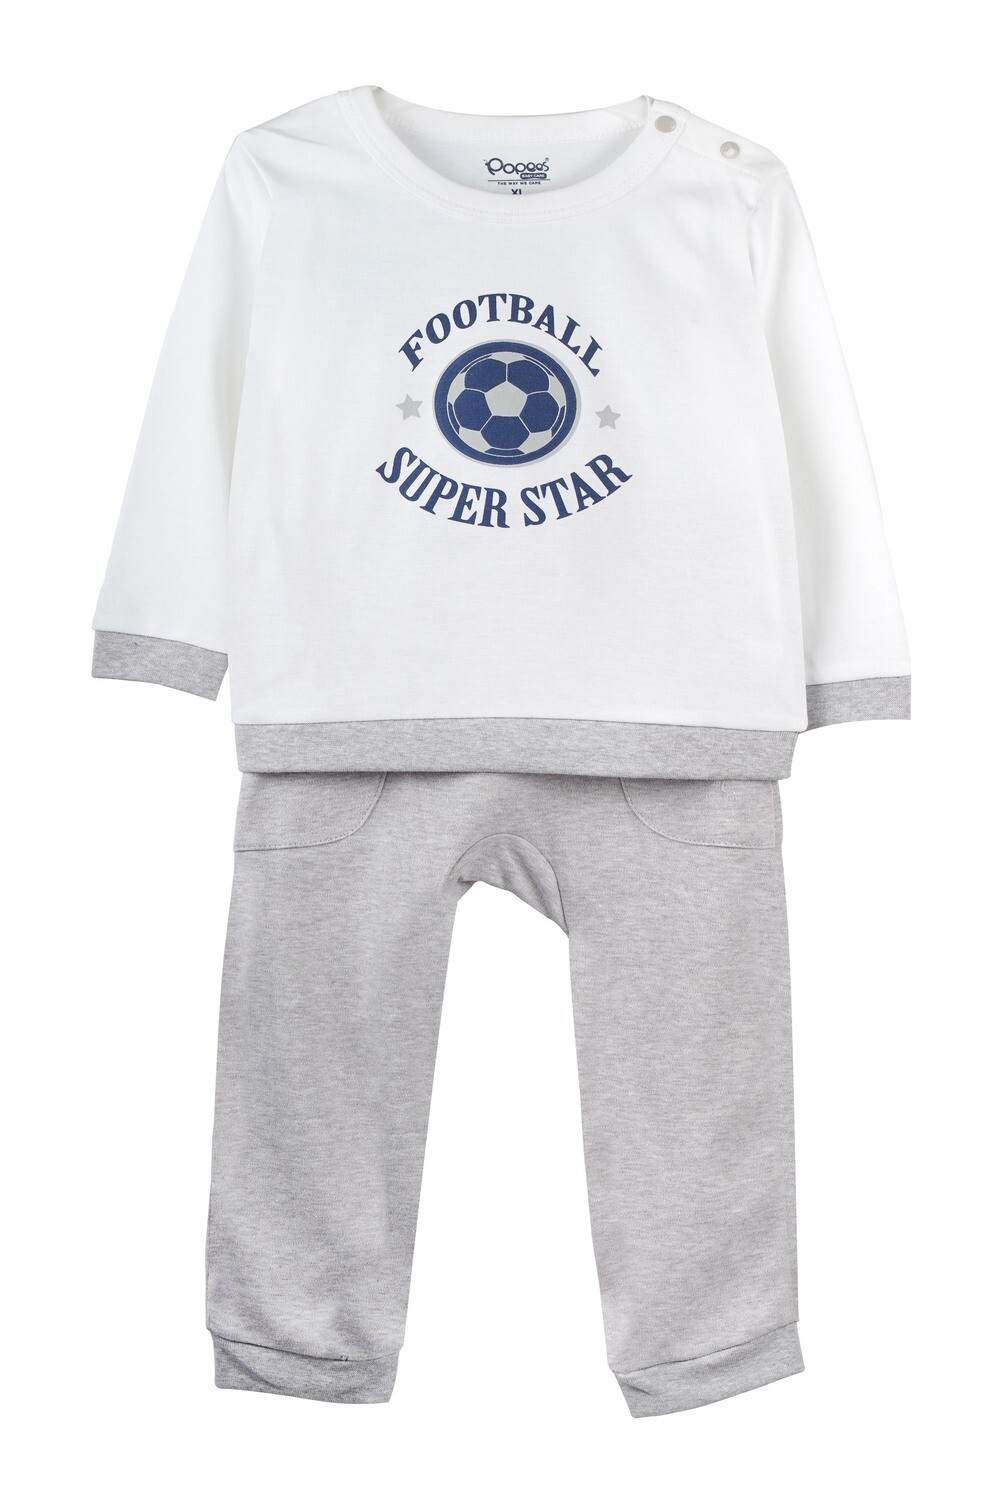 KIRTON White Full Sleeve Shoulder Open Top and Pant for Baby Boys